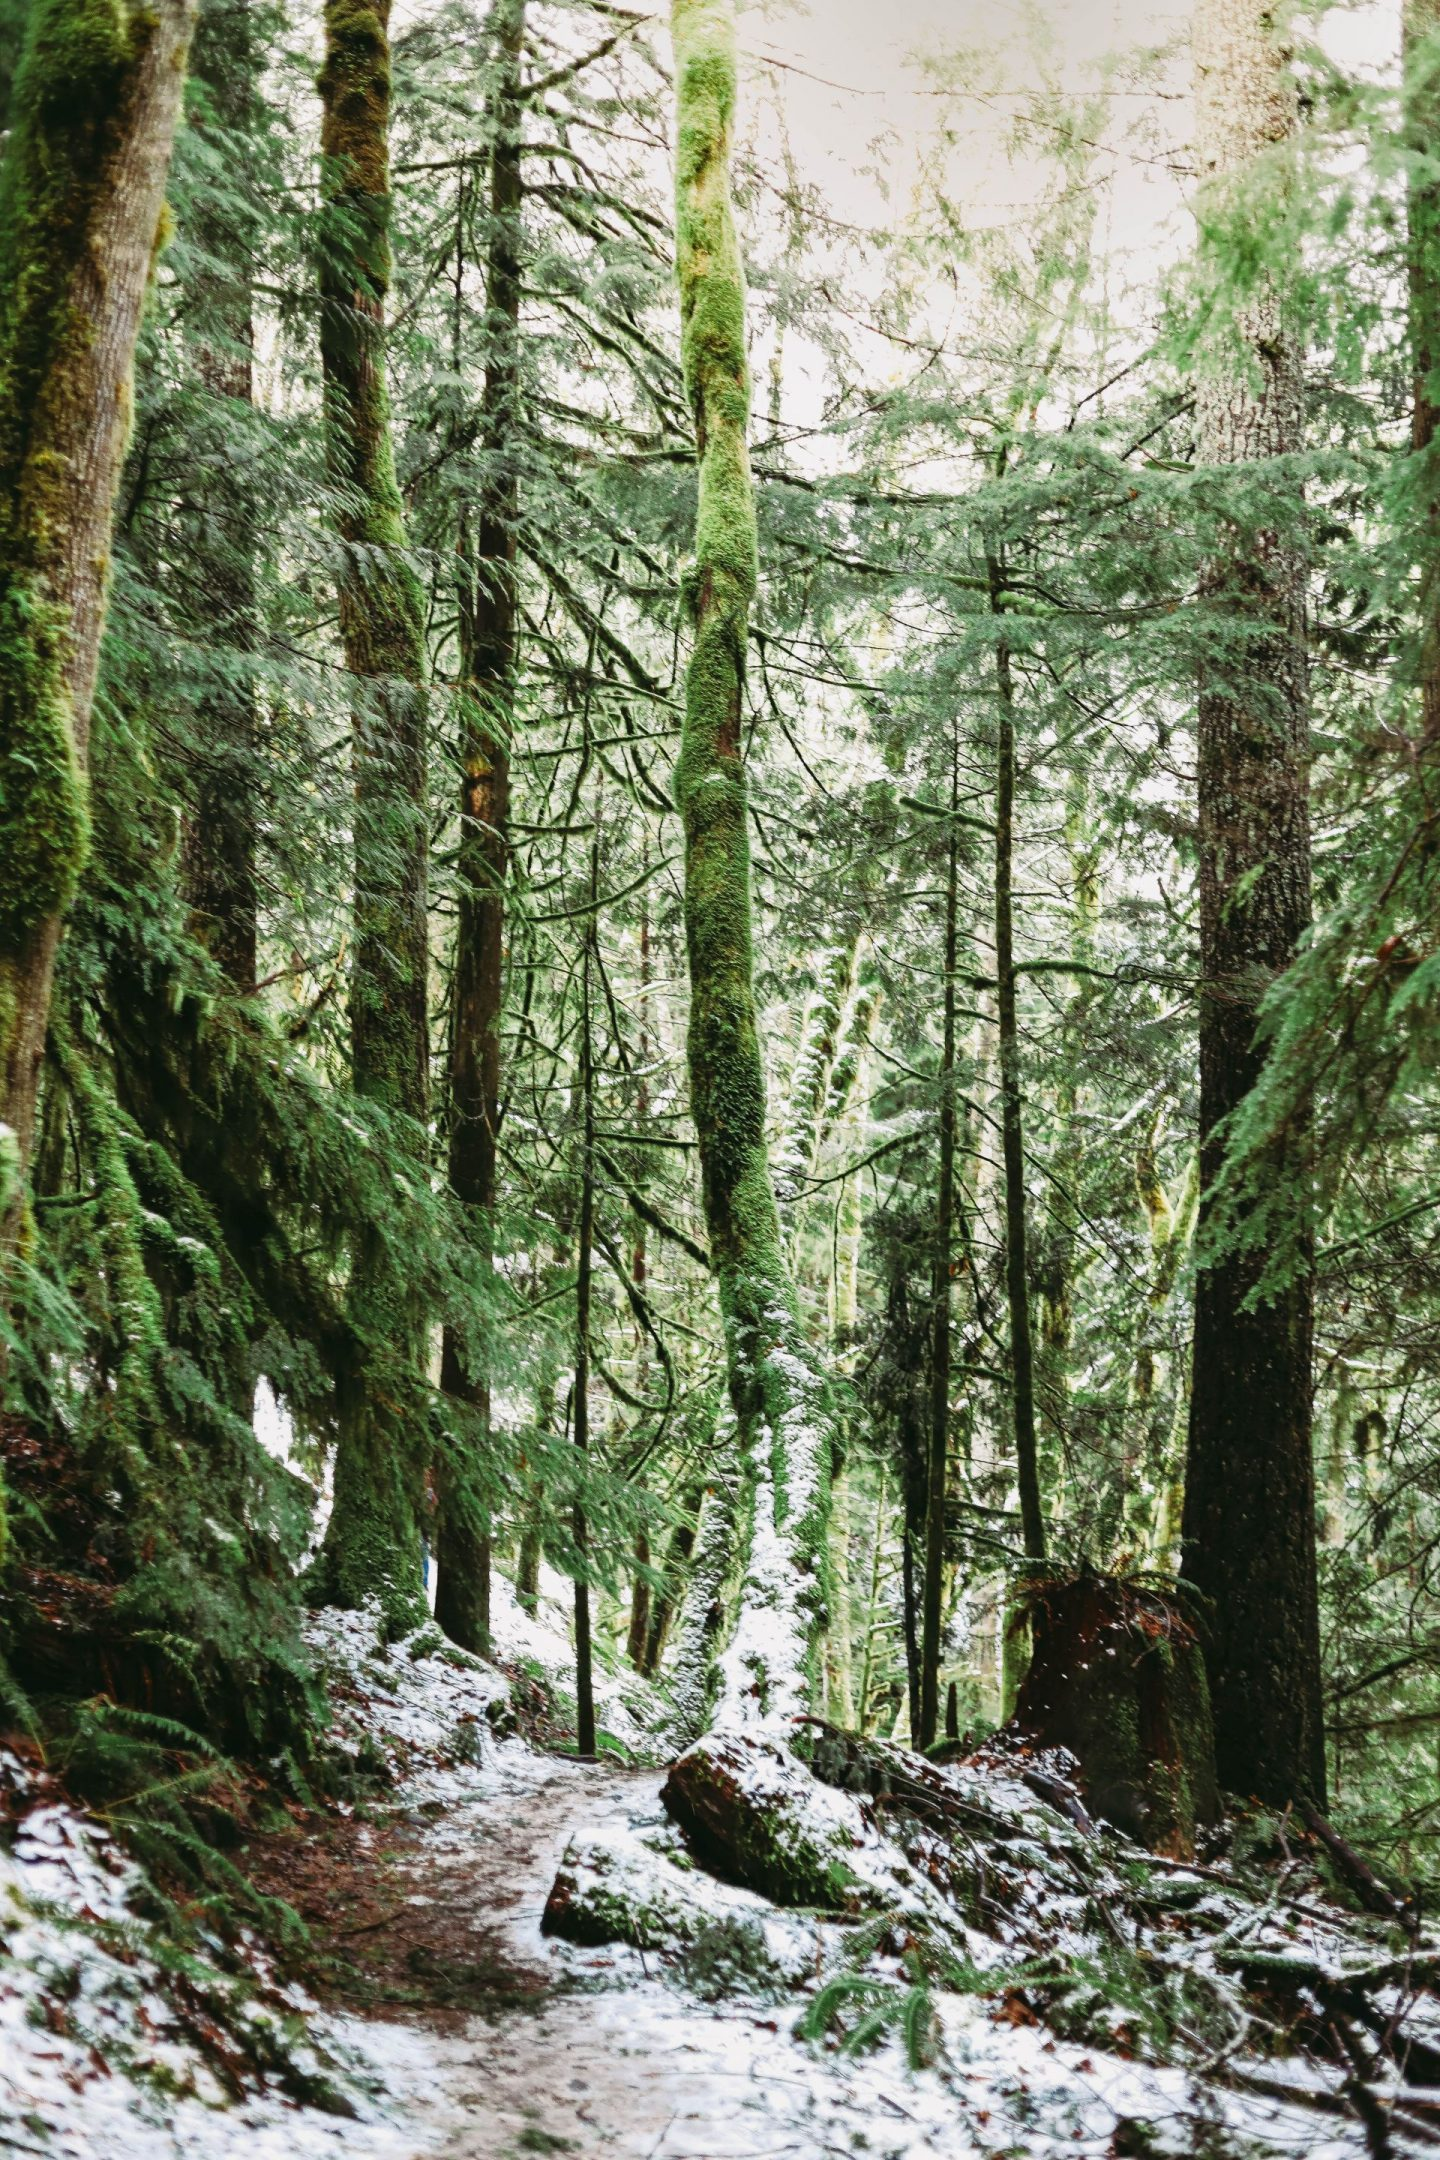 most popular hikes near jblm